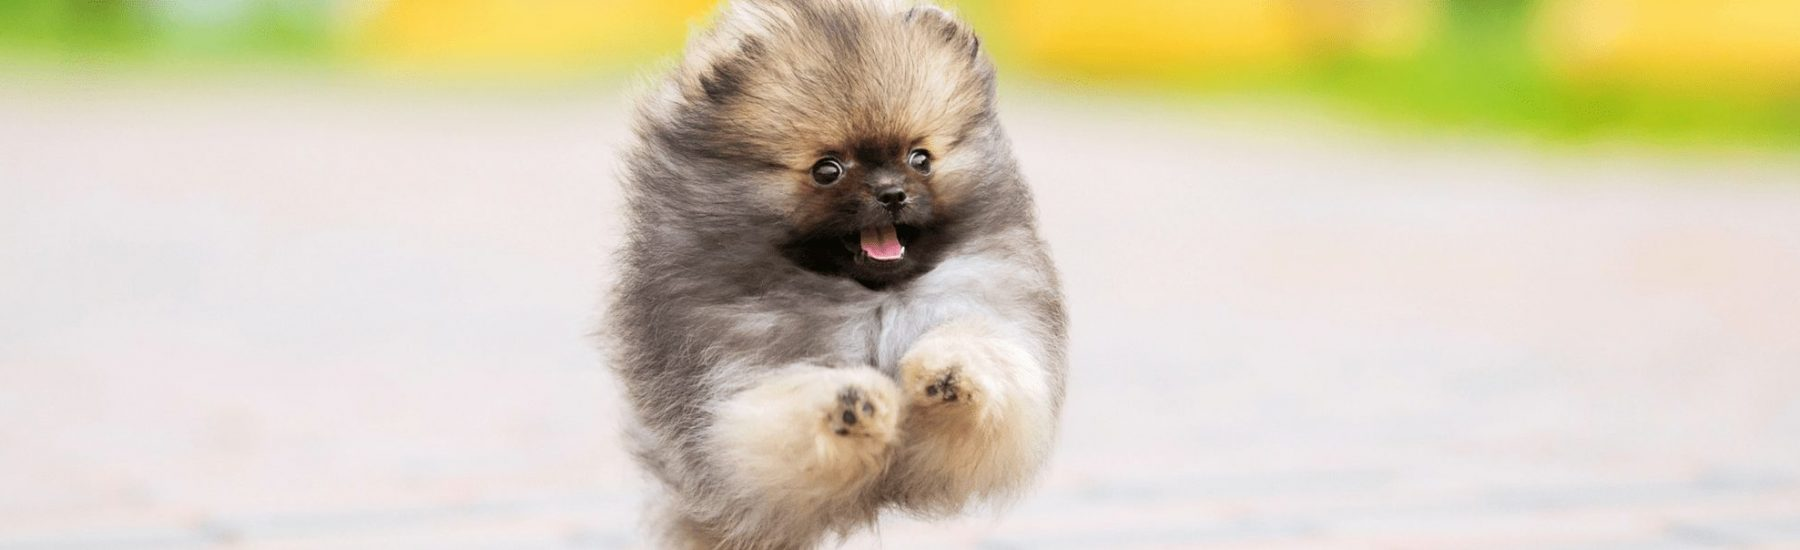 Fluffy Pomeranian dog running